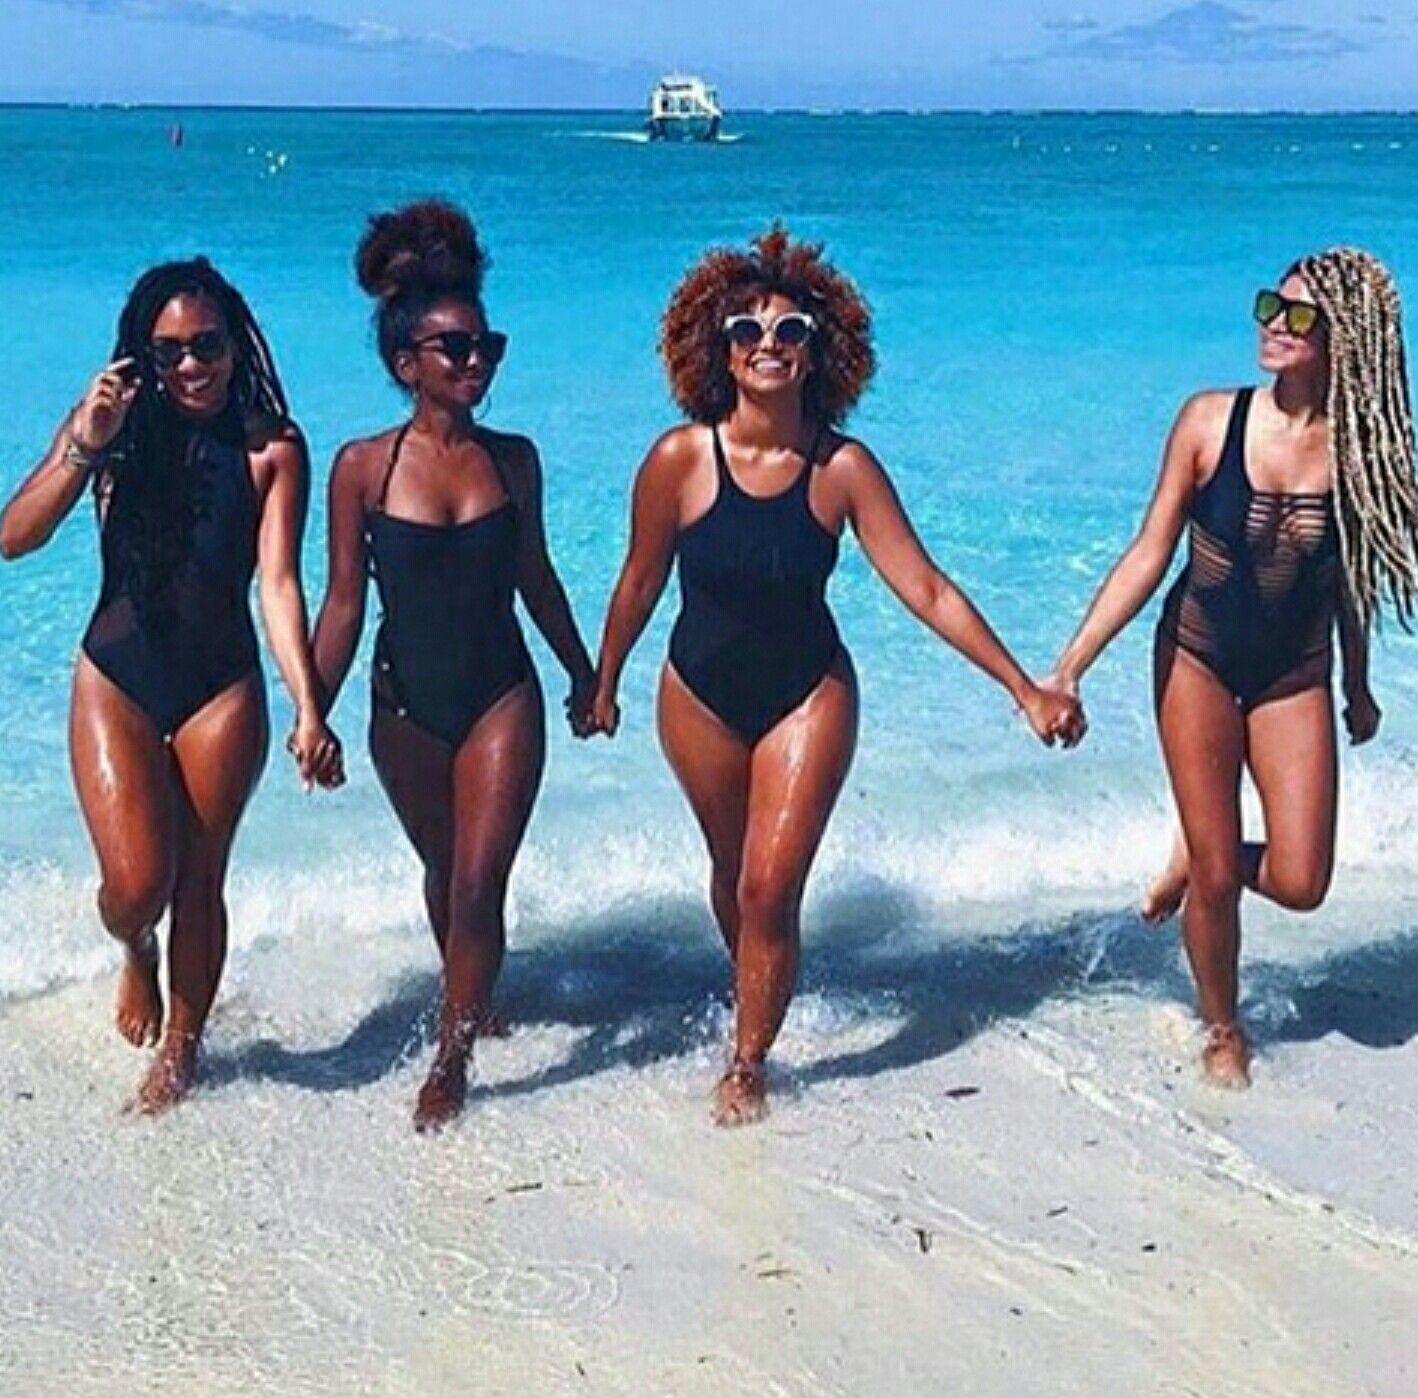 pinterest | cosmicislander ❁ | gal pal | black girls rock